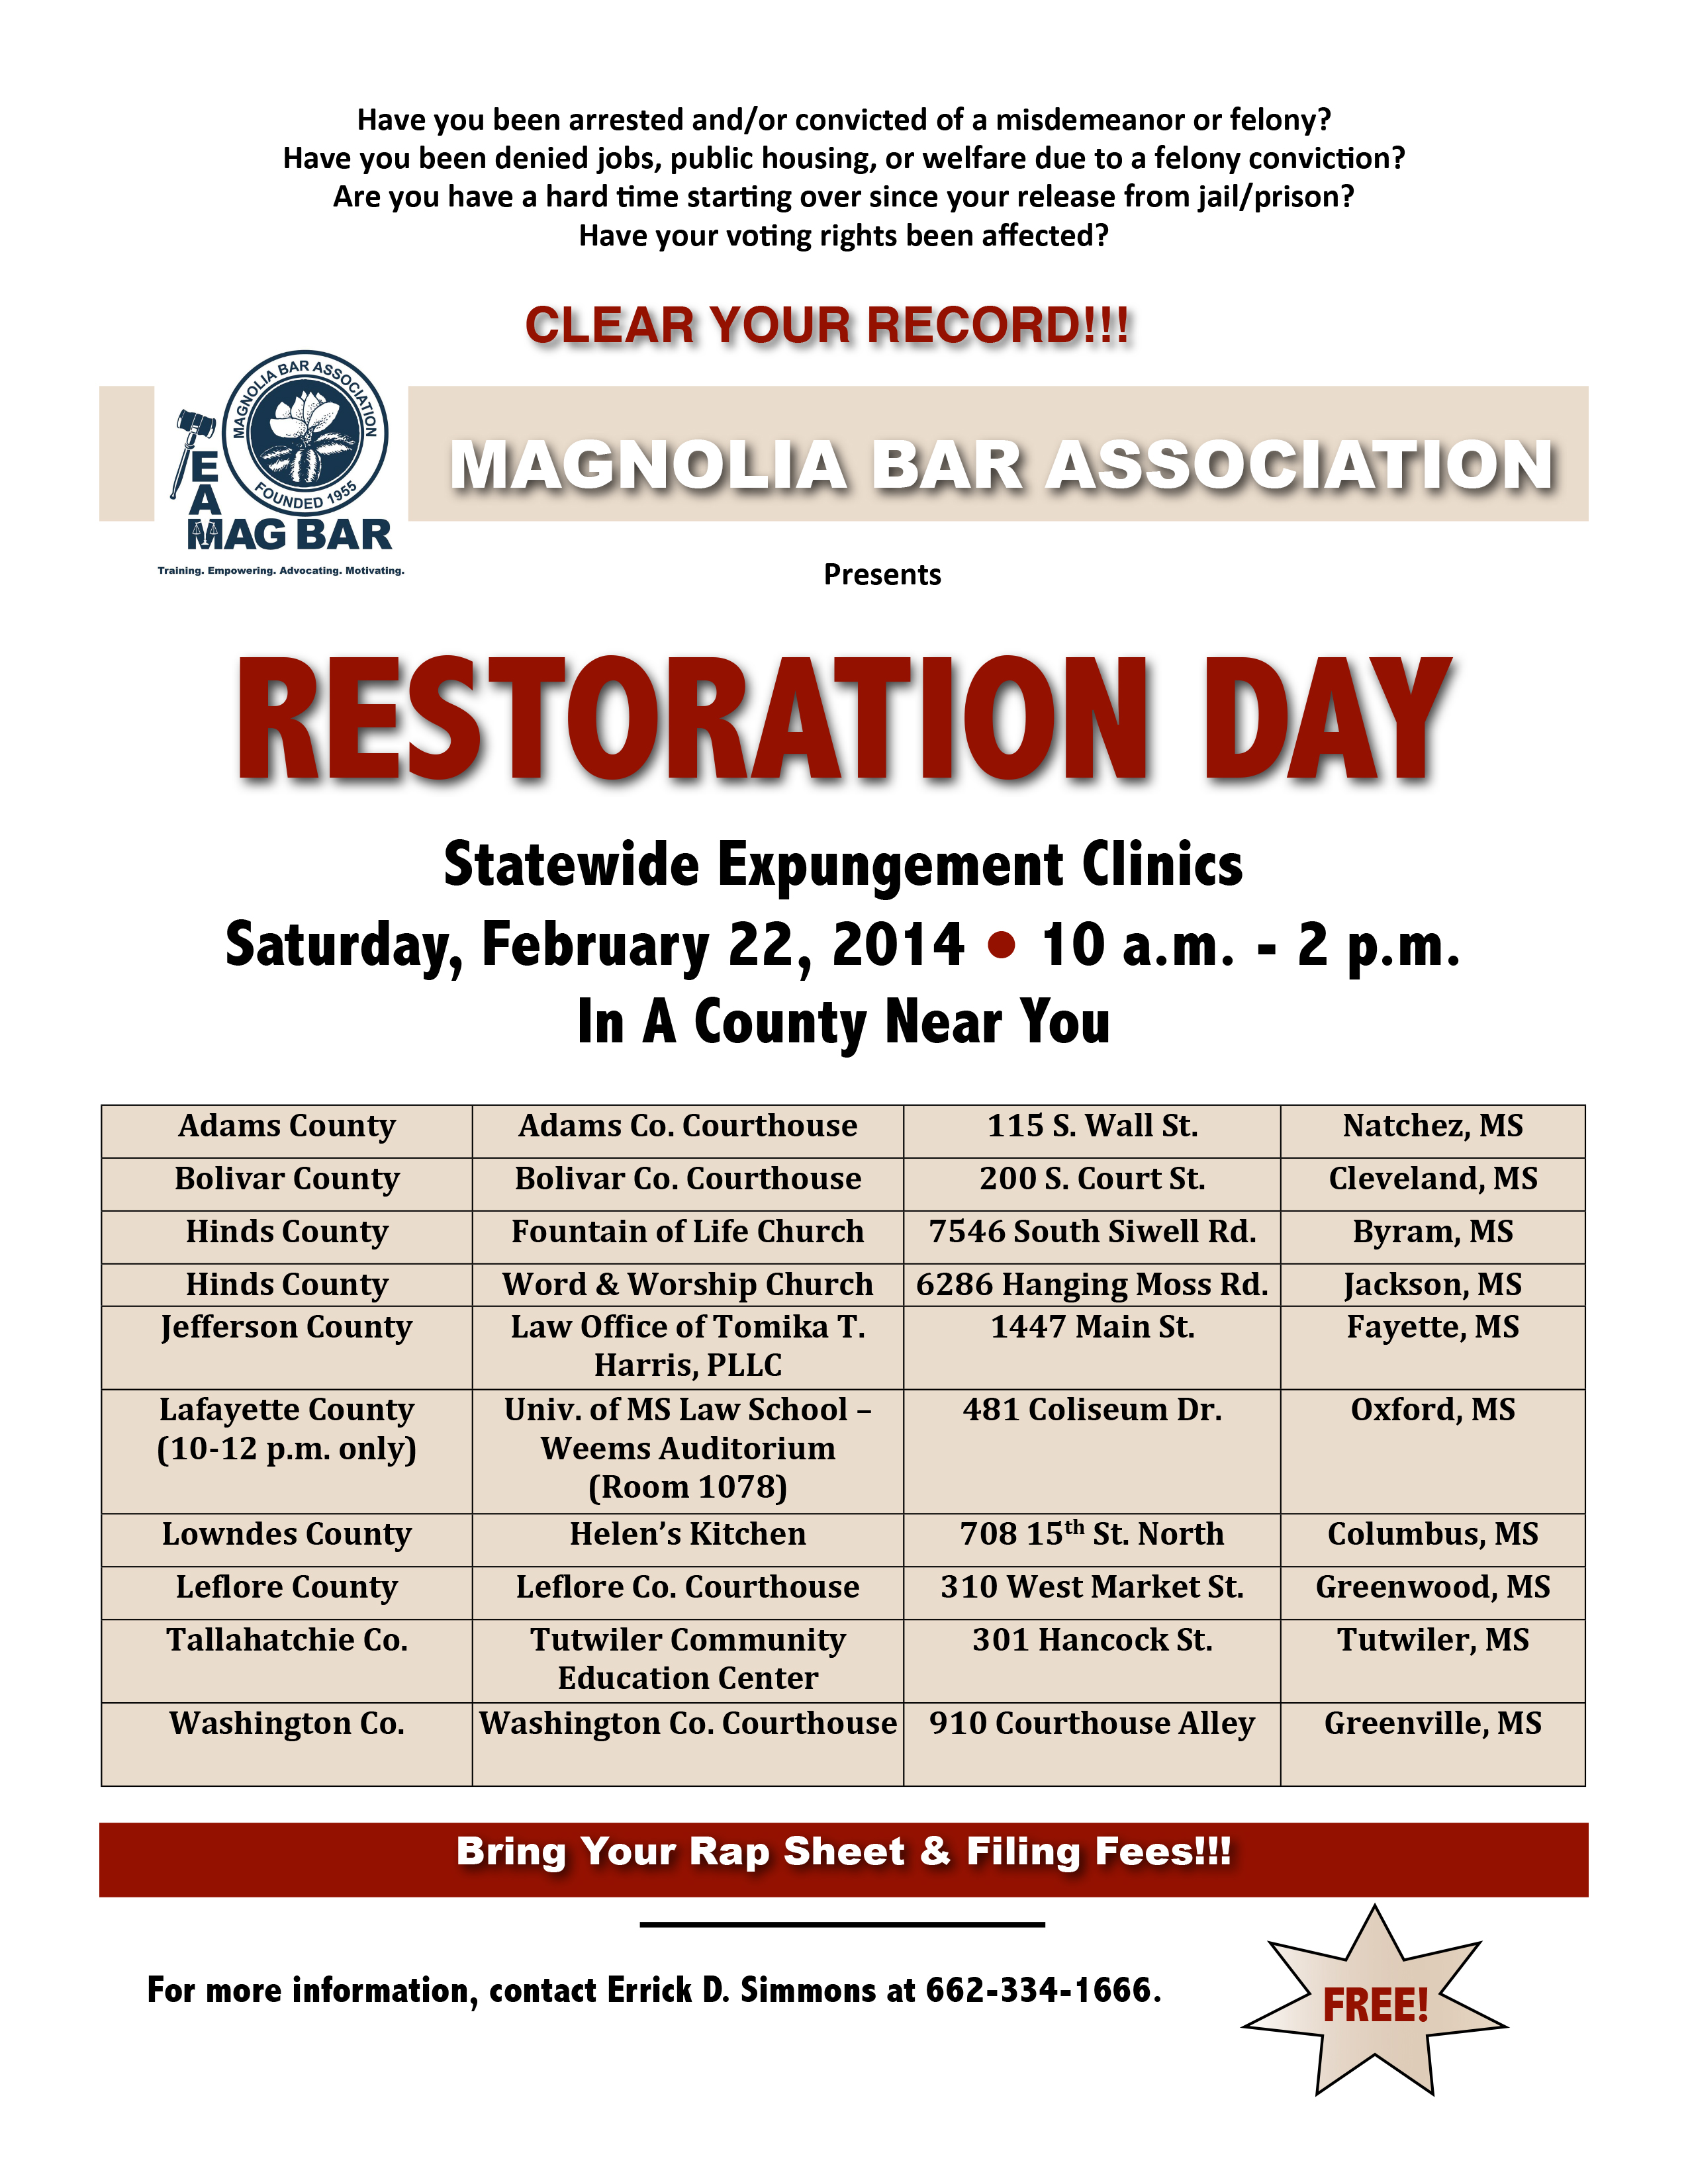 MAG BAR Expungement Clinic flyer